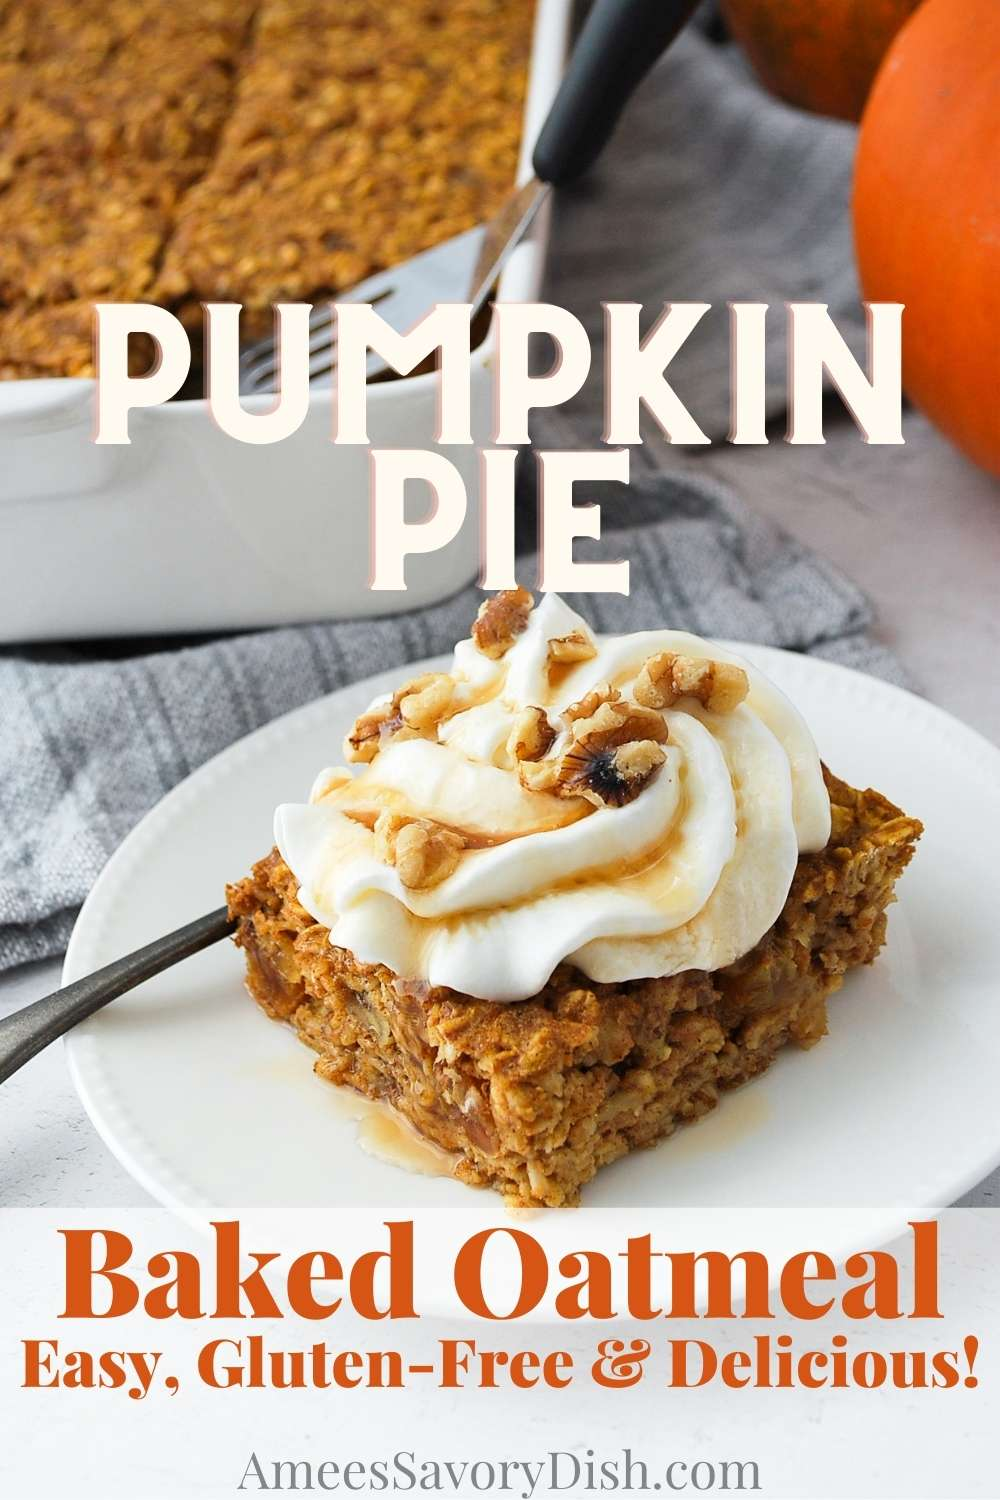 This Pumpkin Pie Baked Oatmeal recipe packs all of the sweet and spiced flavors of pumpkin pie into healthy baked oatmeal made with Greek yogurt, pumpkin puree and maple syrup. The perfect gluten-free fall breakfast. via @Ameessavorydish